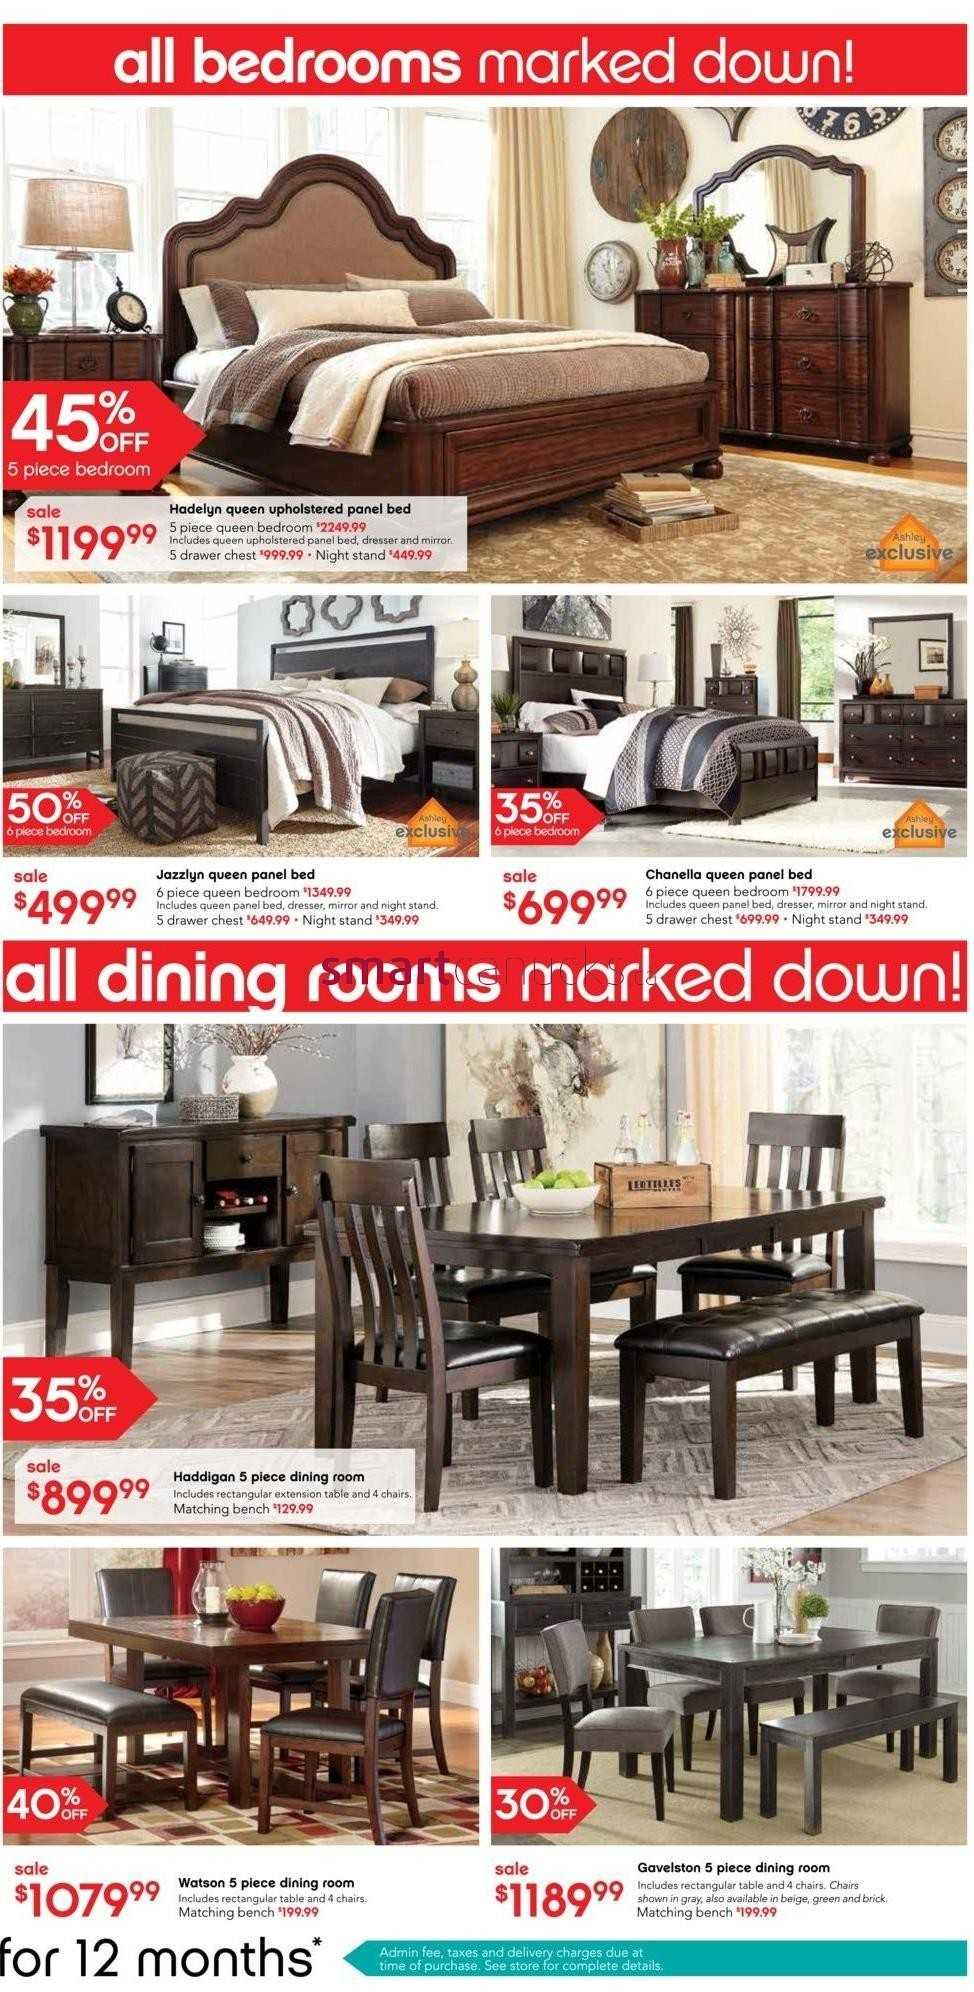 Ashley furniture home store on boxing day flyer december for Ashley furniture homestore canada